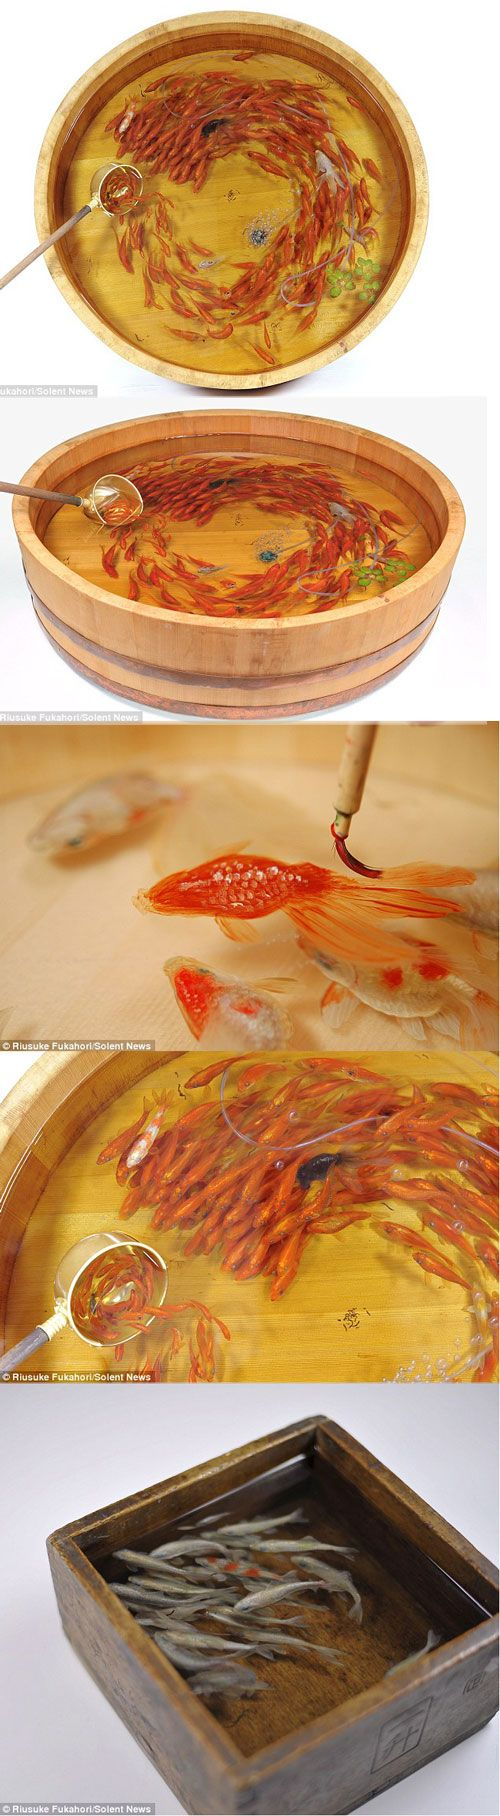 Riusuke Fukahori creates three-dimensional fish sculptures then paints the fish with multiple layers. http://www.dailymail.co.uk/news/article-2165477/Riusuke-Fukahori-fish-sculptures-Artist-creates-3D-models-painting-layer-layer-resin.html